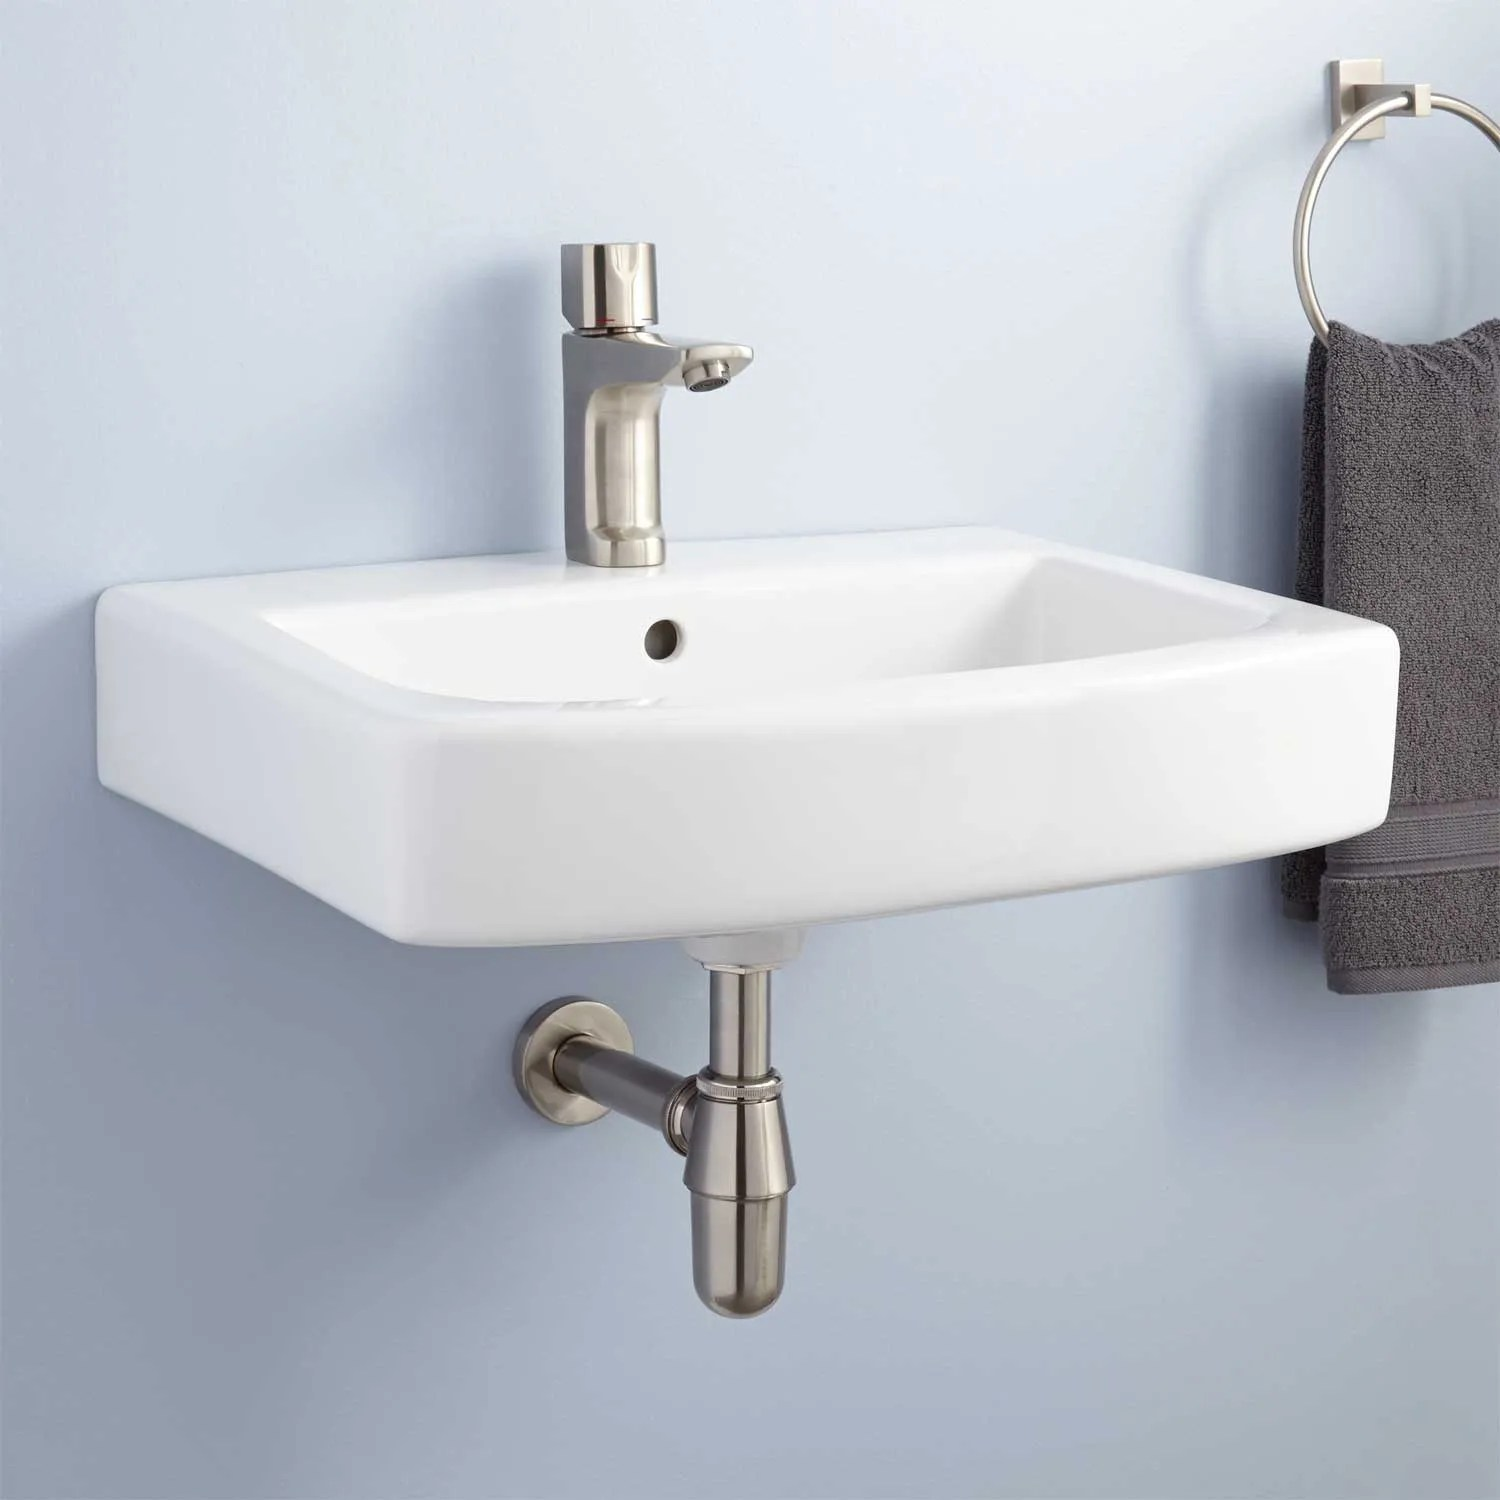 Medeski Porcelain WallMount Bathroom Sink  Bathroom